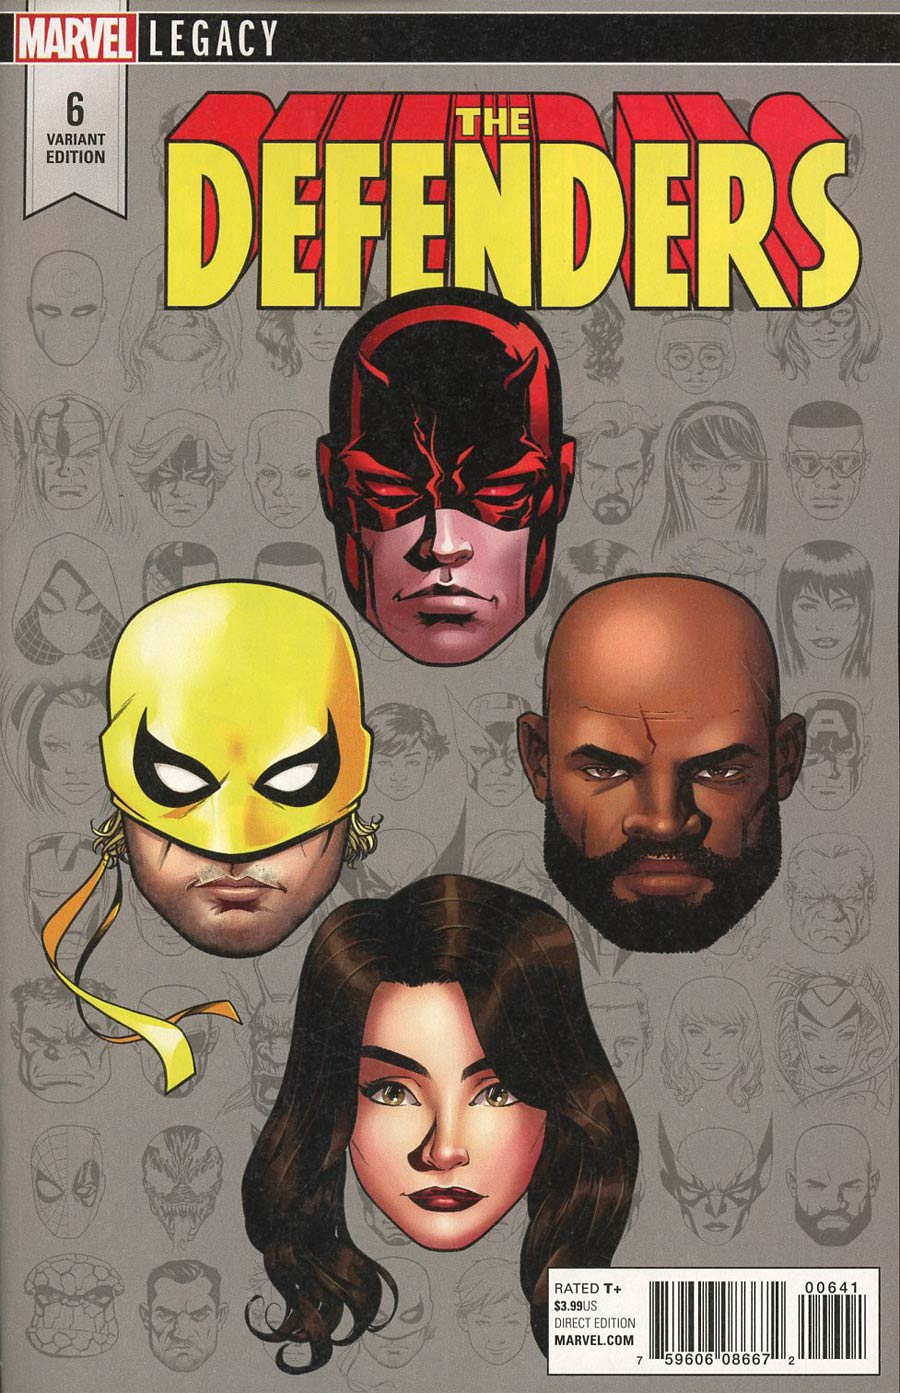 Defenders Vol 5 #6 Cover D Incentive Mike McKone Legacy Headshot Variant Cover (Marvel Legacy Tie-In)